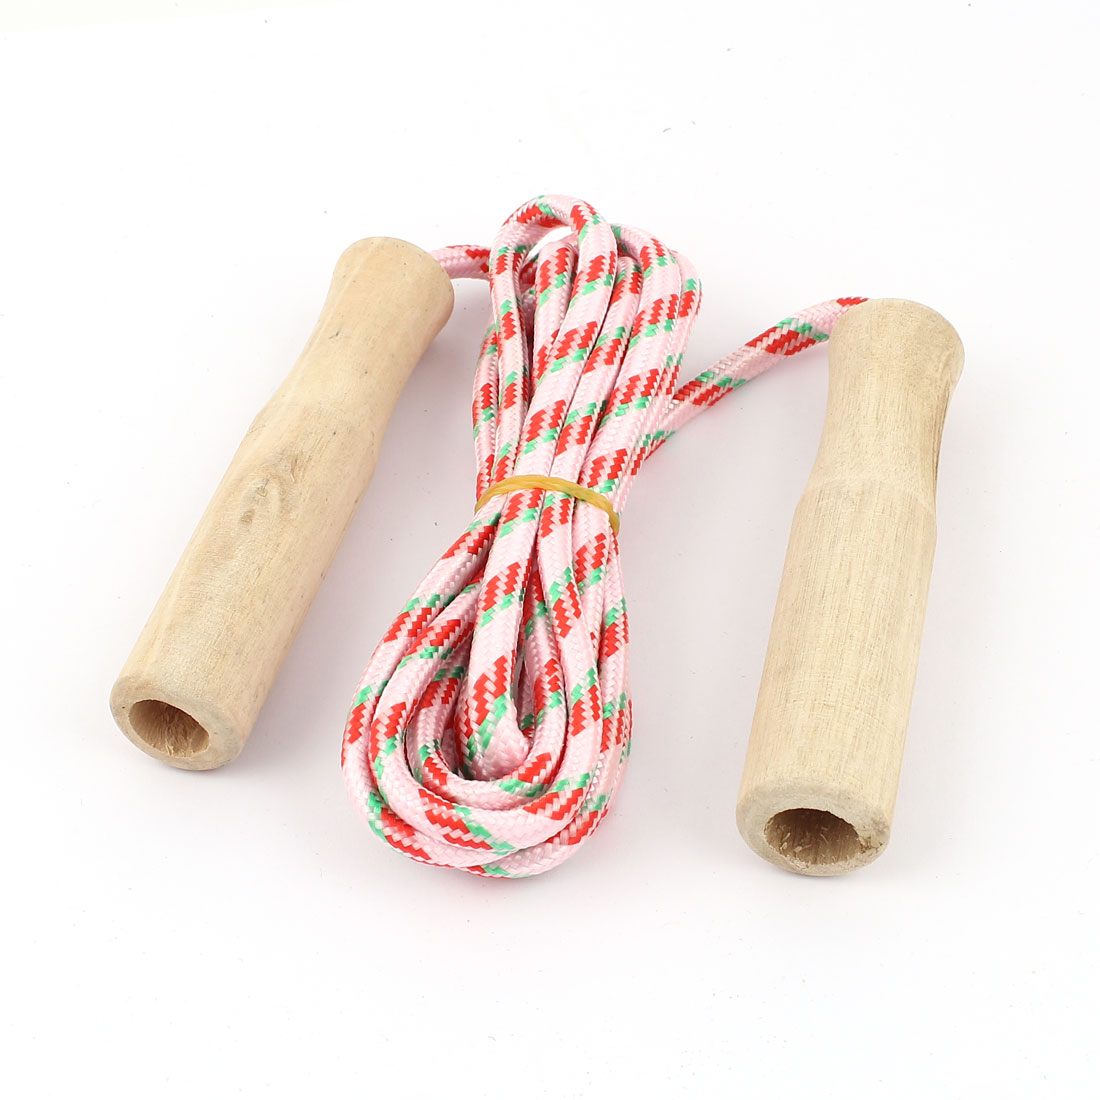 Wooden Handle Sports Exercise Jumping Skipping Rope Pink 2 Meter Long